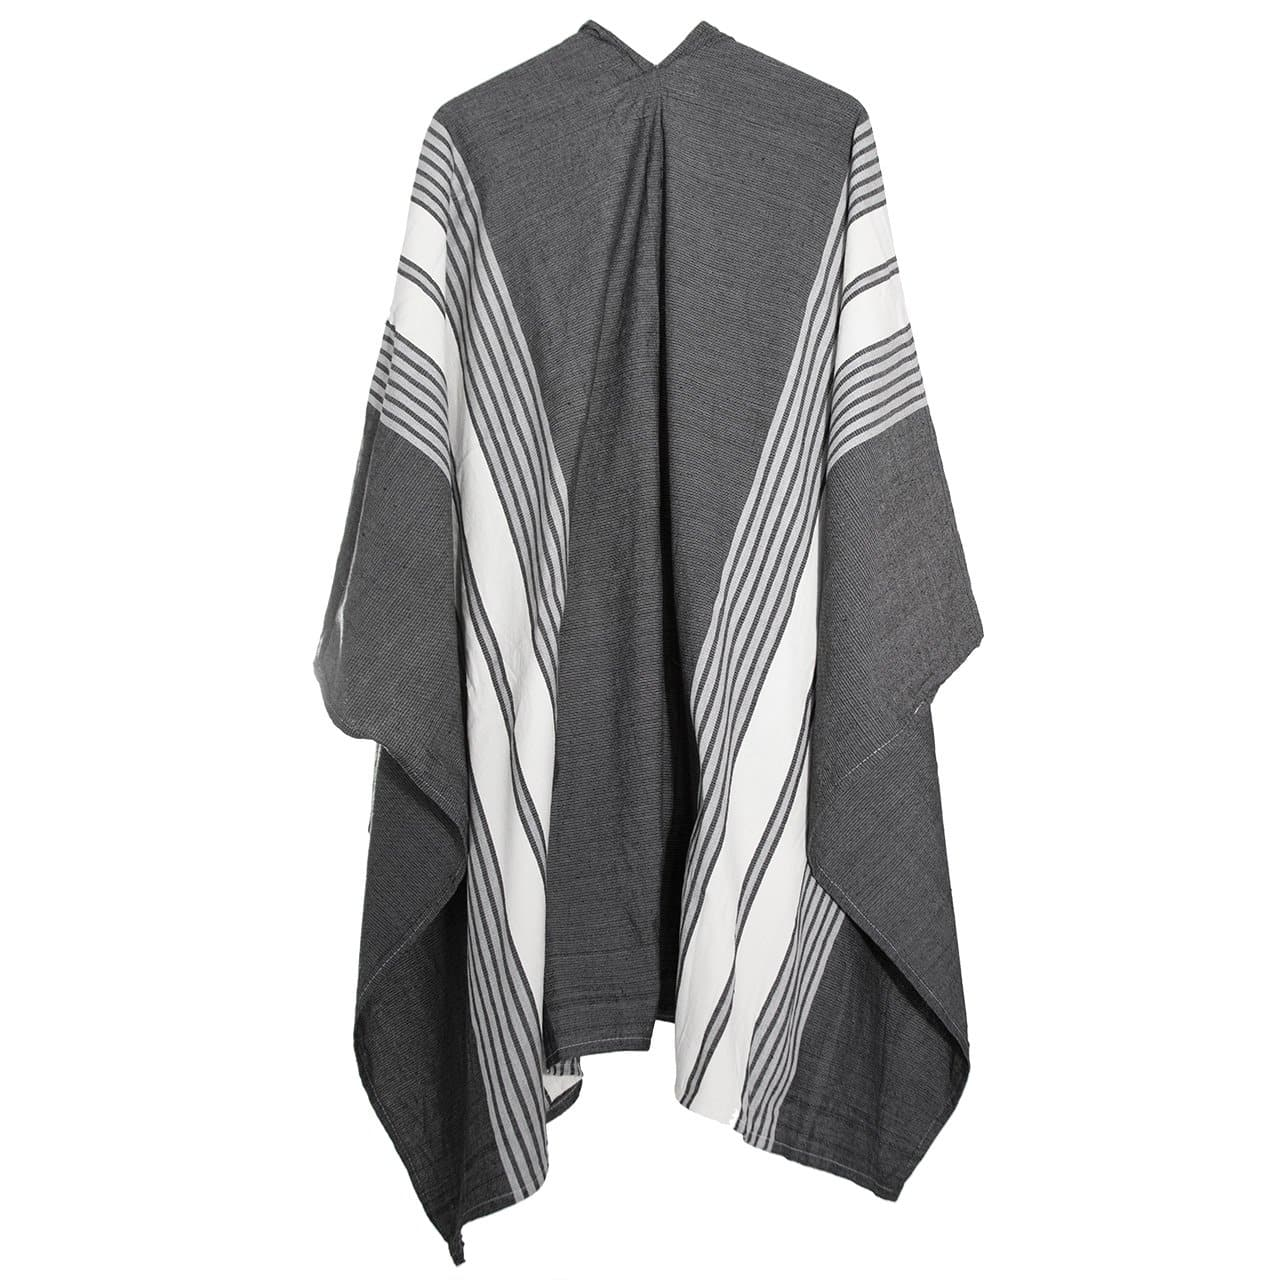 Cape/Poncho with Lines